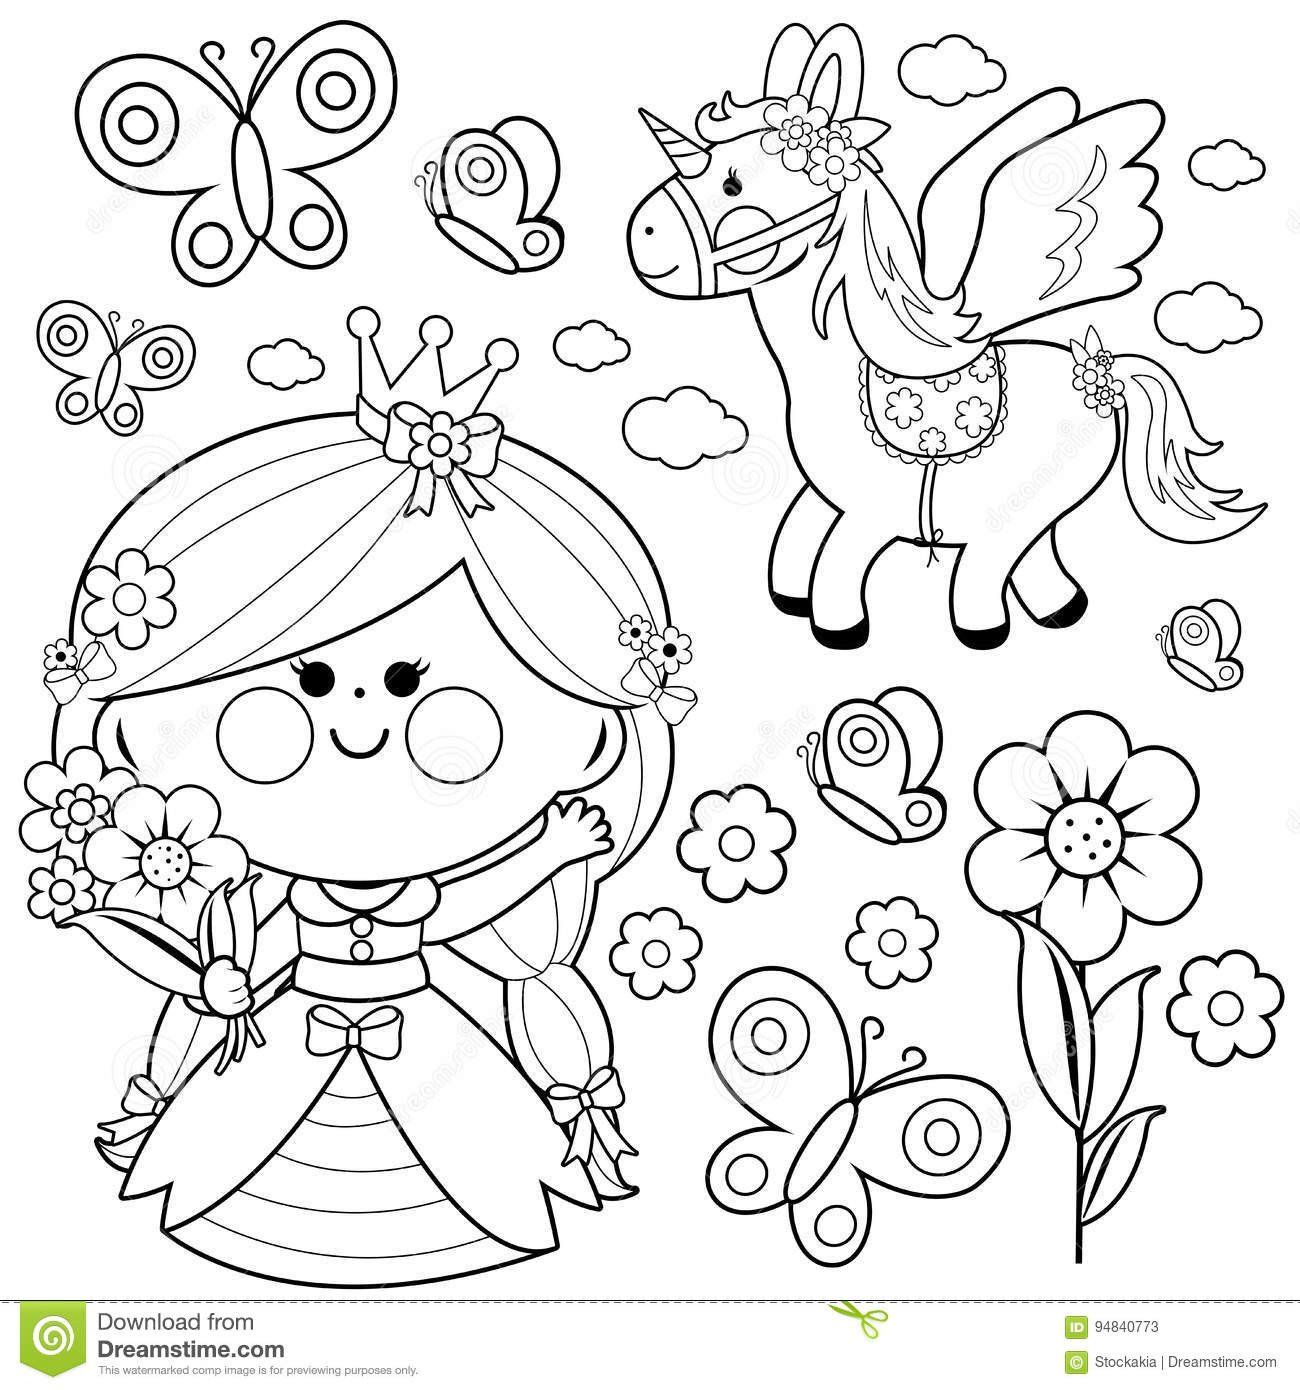 Fairy Tail Coloring Pages Fresh Coloring Pages Outstanding Prince And Princess Coloring Unicorn Coloring Pages Princess Coloring Pages Butterfly Coloring Page